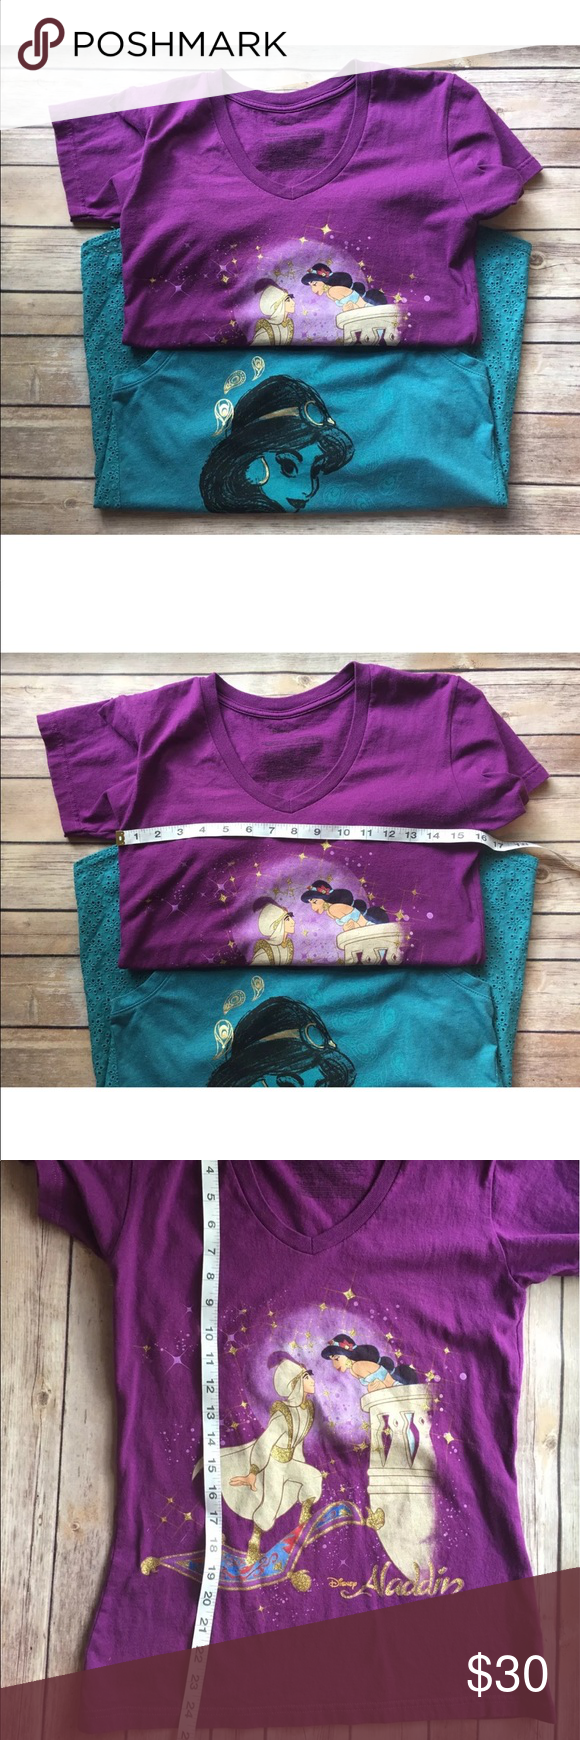 Disney Aladin and Jasmine shirts size small In excellent condition no stains rips or holes. The Aladdin and jasmine shirt might show signs of stretching in the graphics. Disney Tops Tees - Short Sleeve